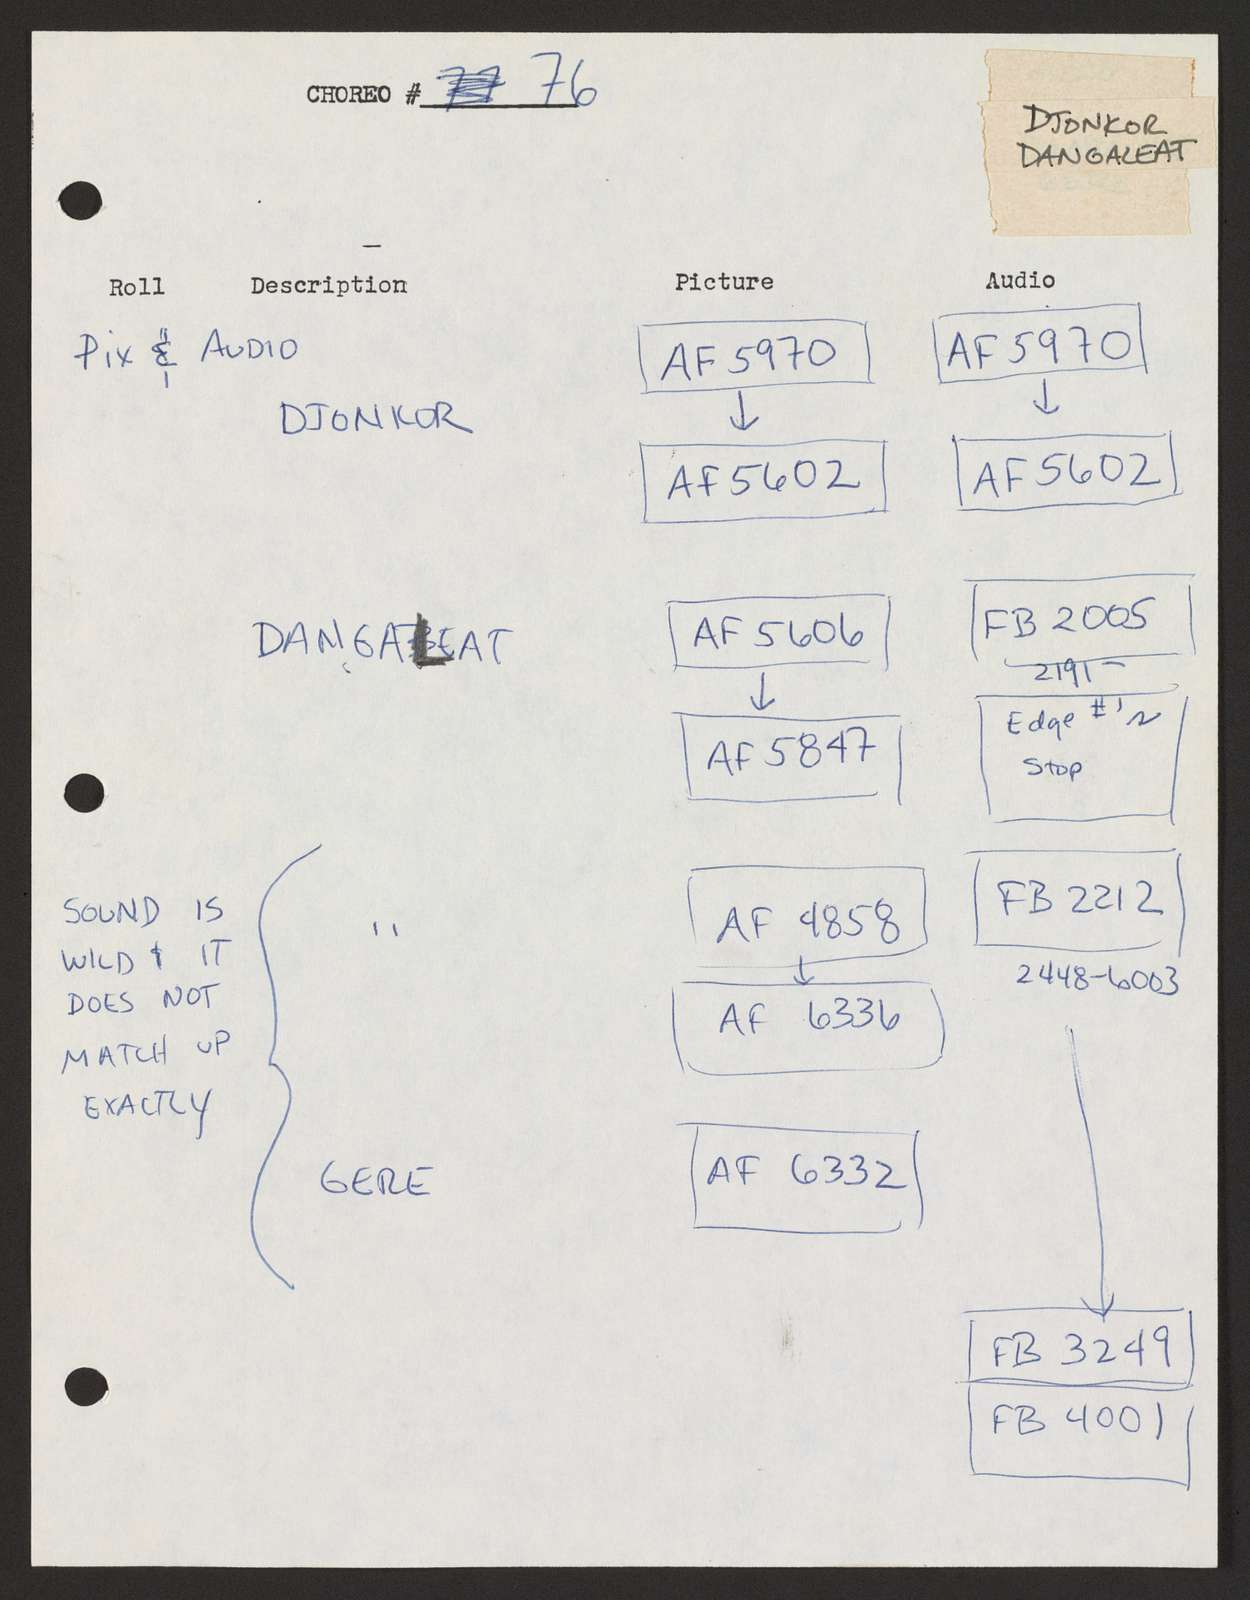 Alan Lomax Collection, Manuscripts, Performance style, Choreometrics, sources, Indexes, New Pix and Audio Log Book, folder 1 of 3